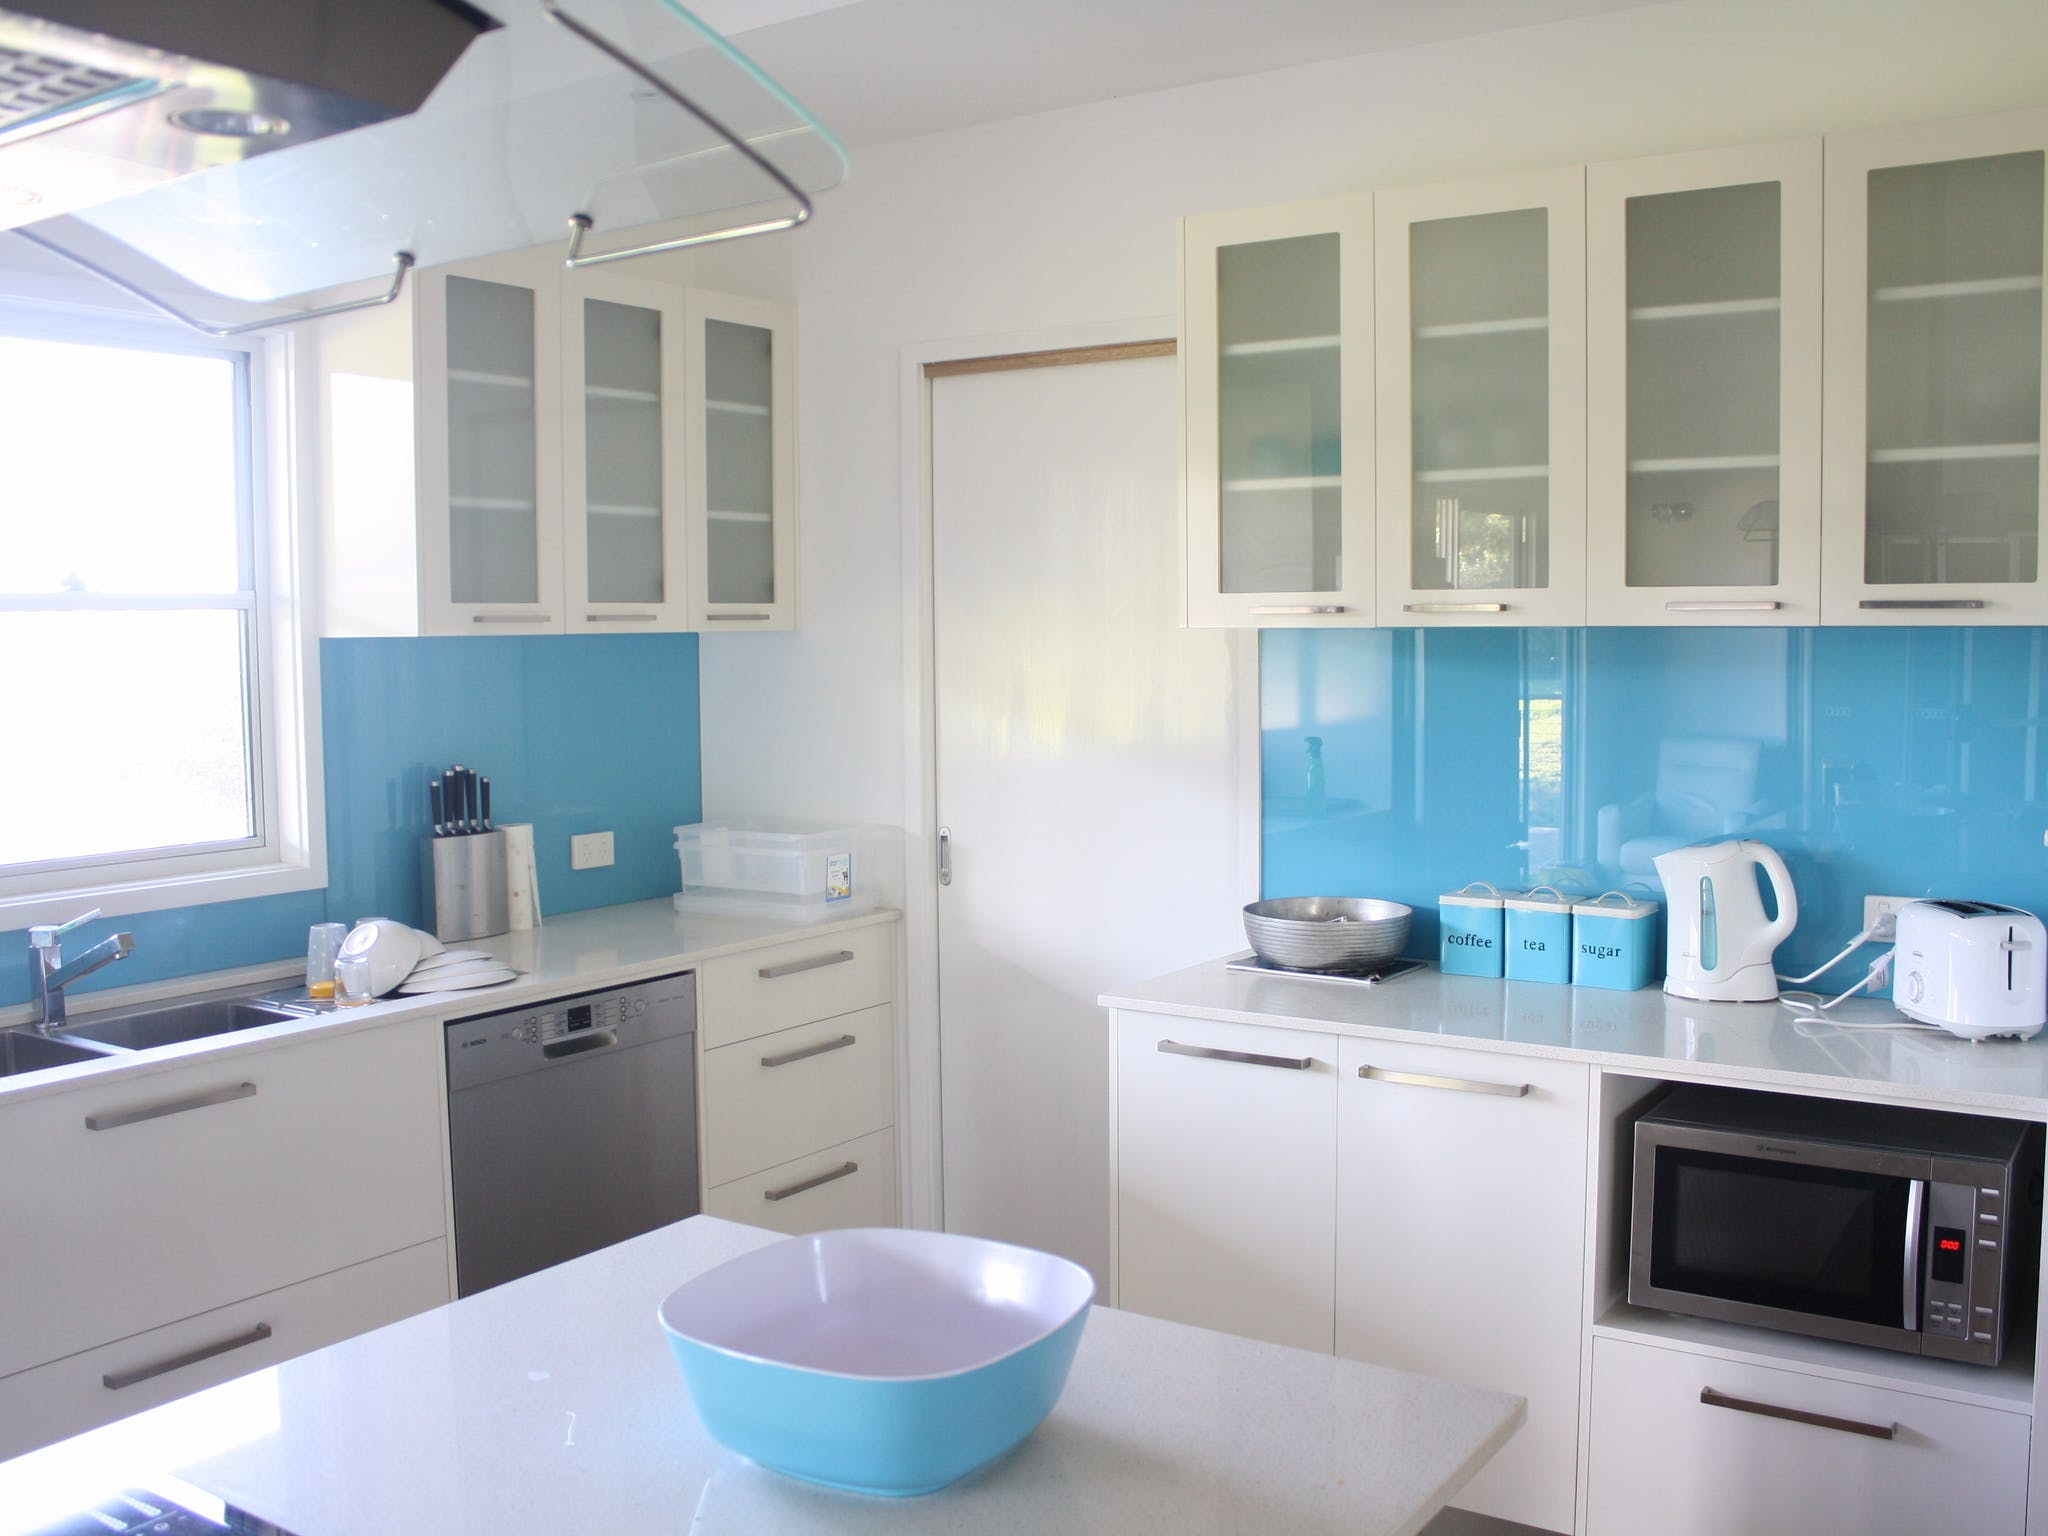 The large kitchen features induction stove with oven, large pantry and everything you need to feast